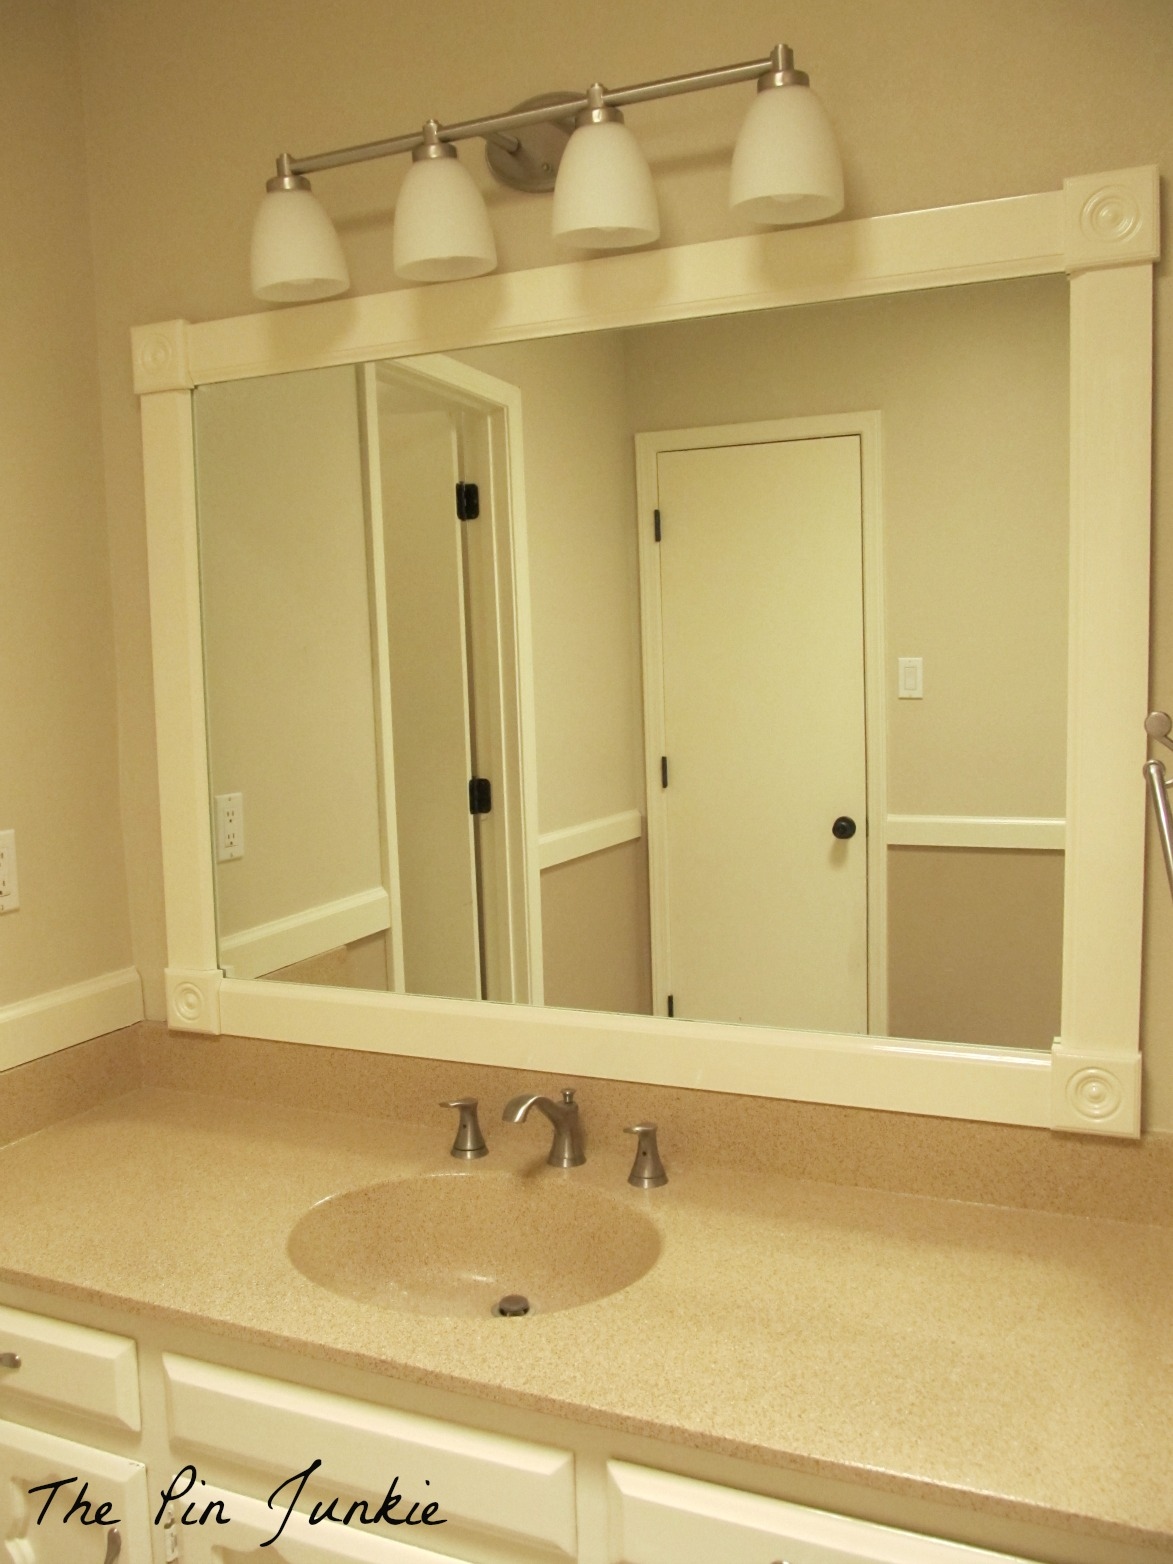 How to frame a bathroom mirror how to frame bathroom mirror amipublicfo Choice Image